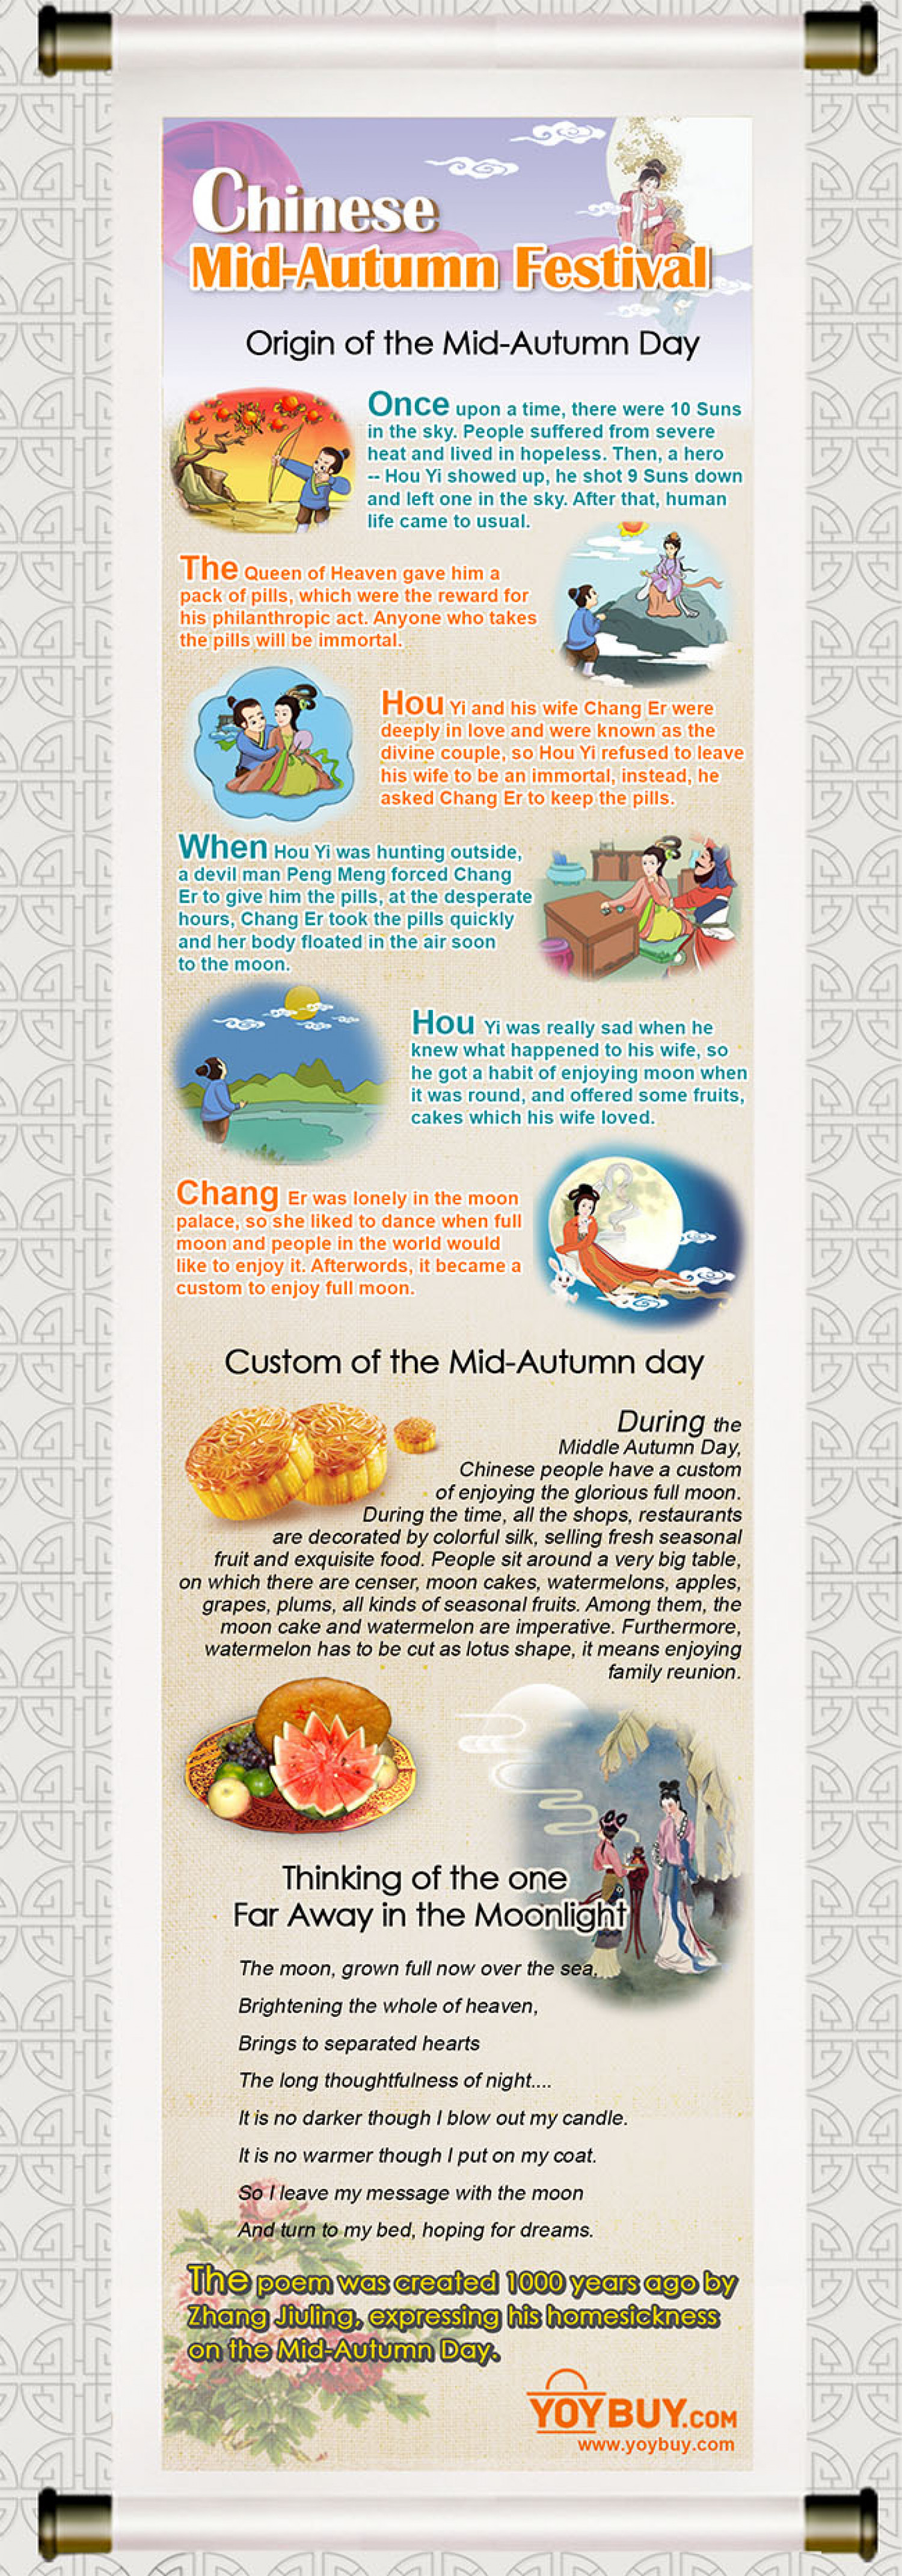 Moon Cake Festival in China  Infographic